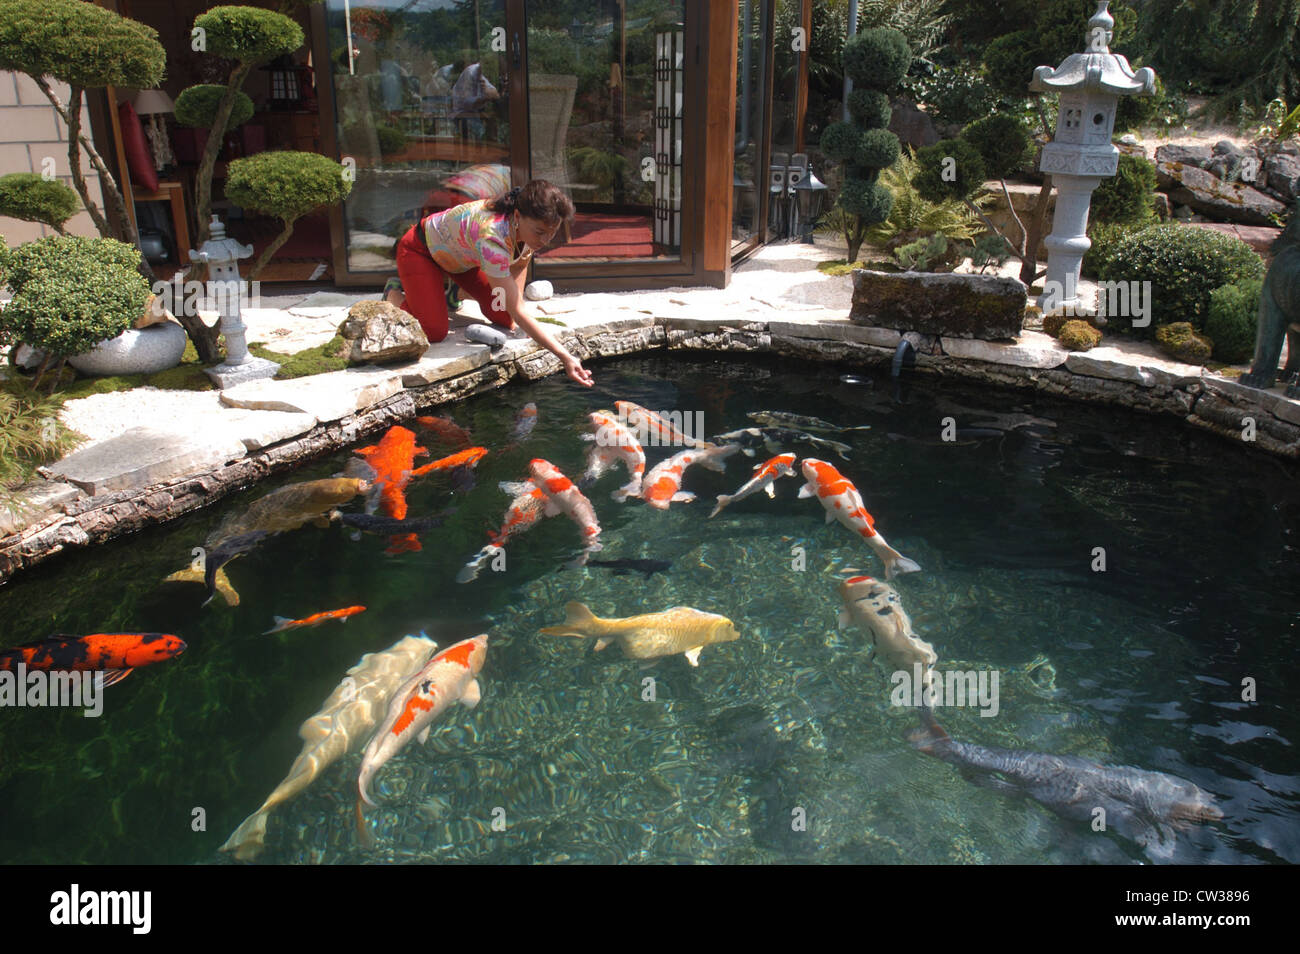 Koi pond in reigoldswil switzerland stock photo royalty for Indoor koi pool